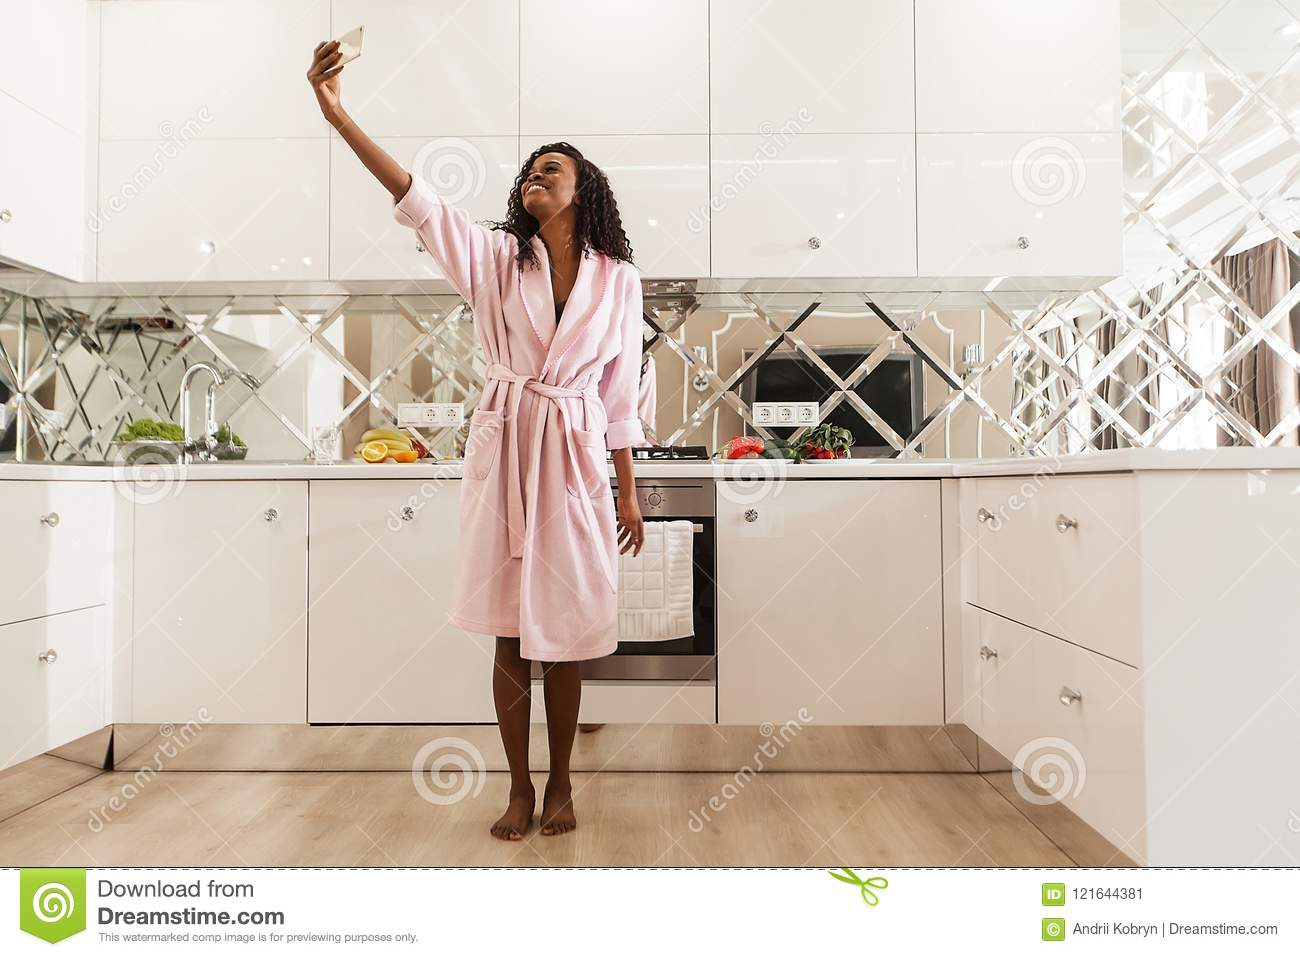 Beautiful smiling african woman with curly hair in pink bathrobe is taking selfie on the mobile phone. Modern kitchen